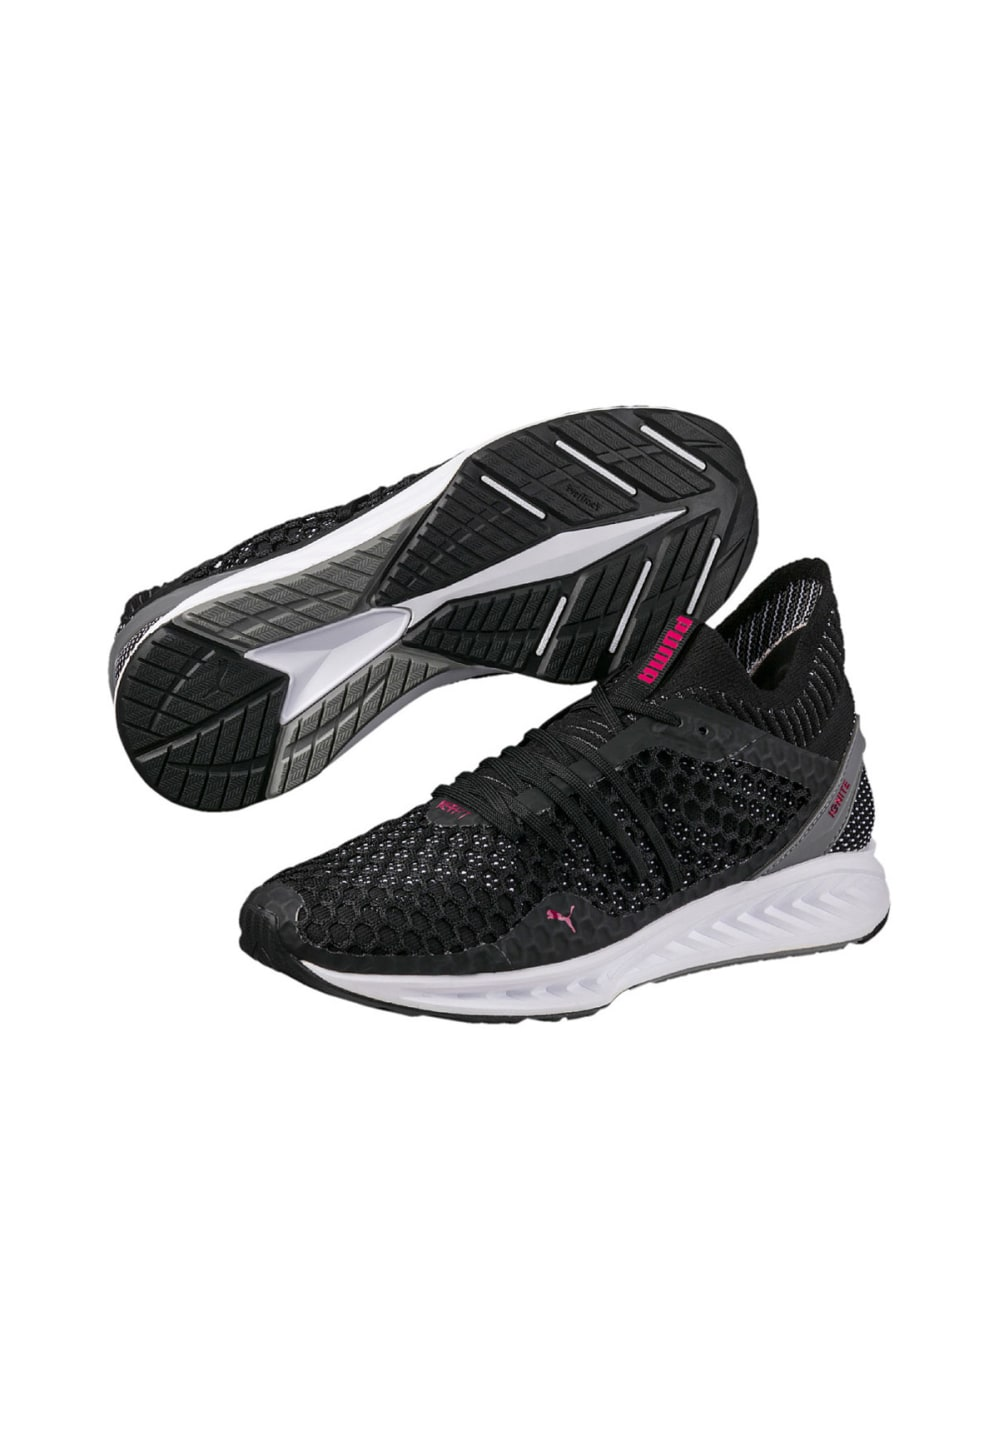 812268ea130 ... Puma IGNITE NETFIT - Running shoes for Women - Black. Back to Overview.  1  2  3. Previous